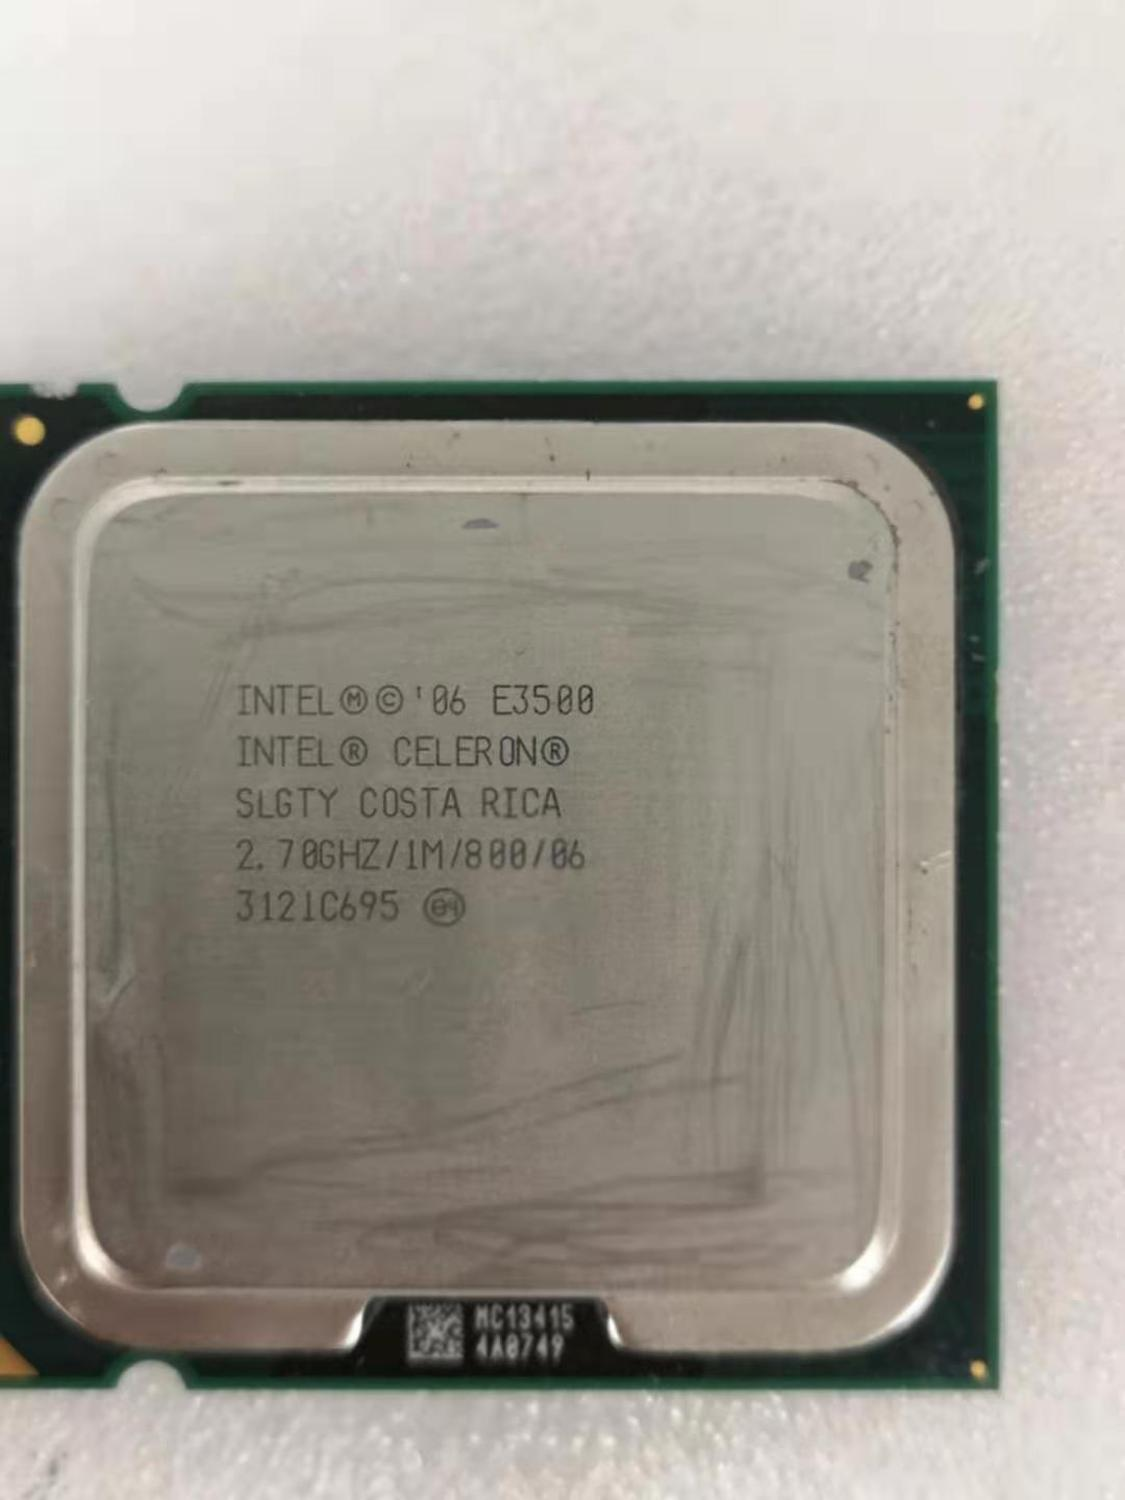 Intel Core 2 Duo E3500 Desktop Processor Dual-Core 2.7GHz 1MB Cache FSB 800MHz LGA 775 E 3500 Used CPU